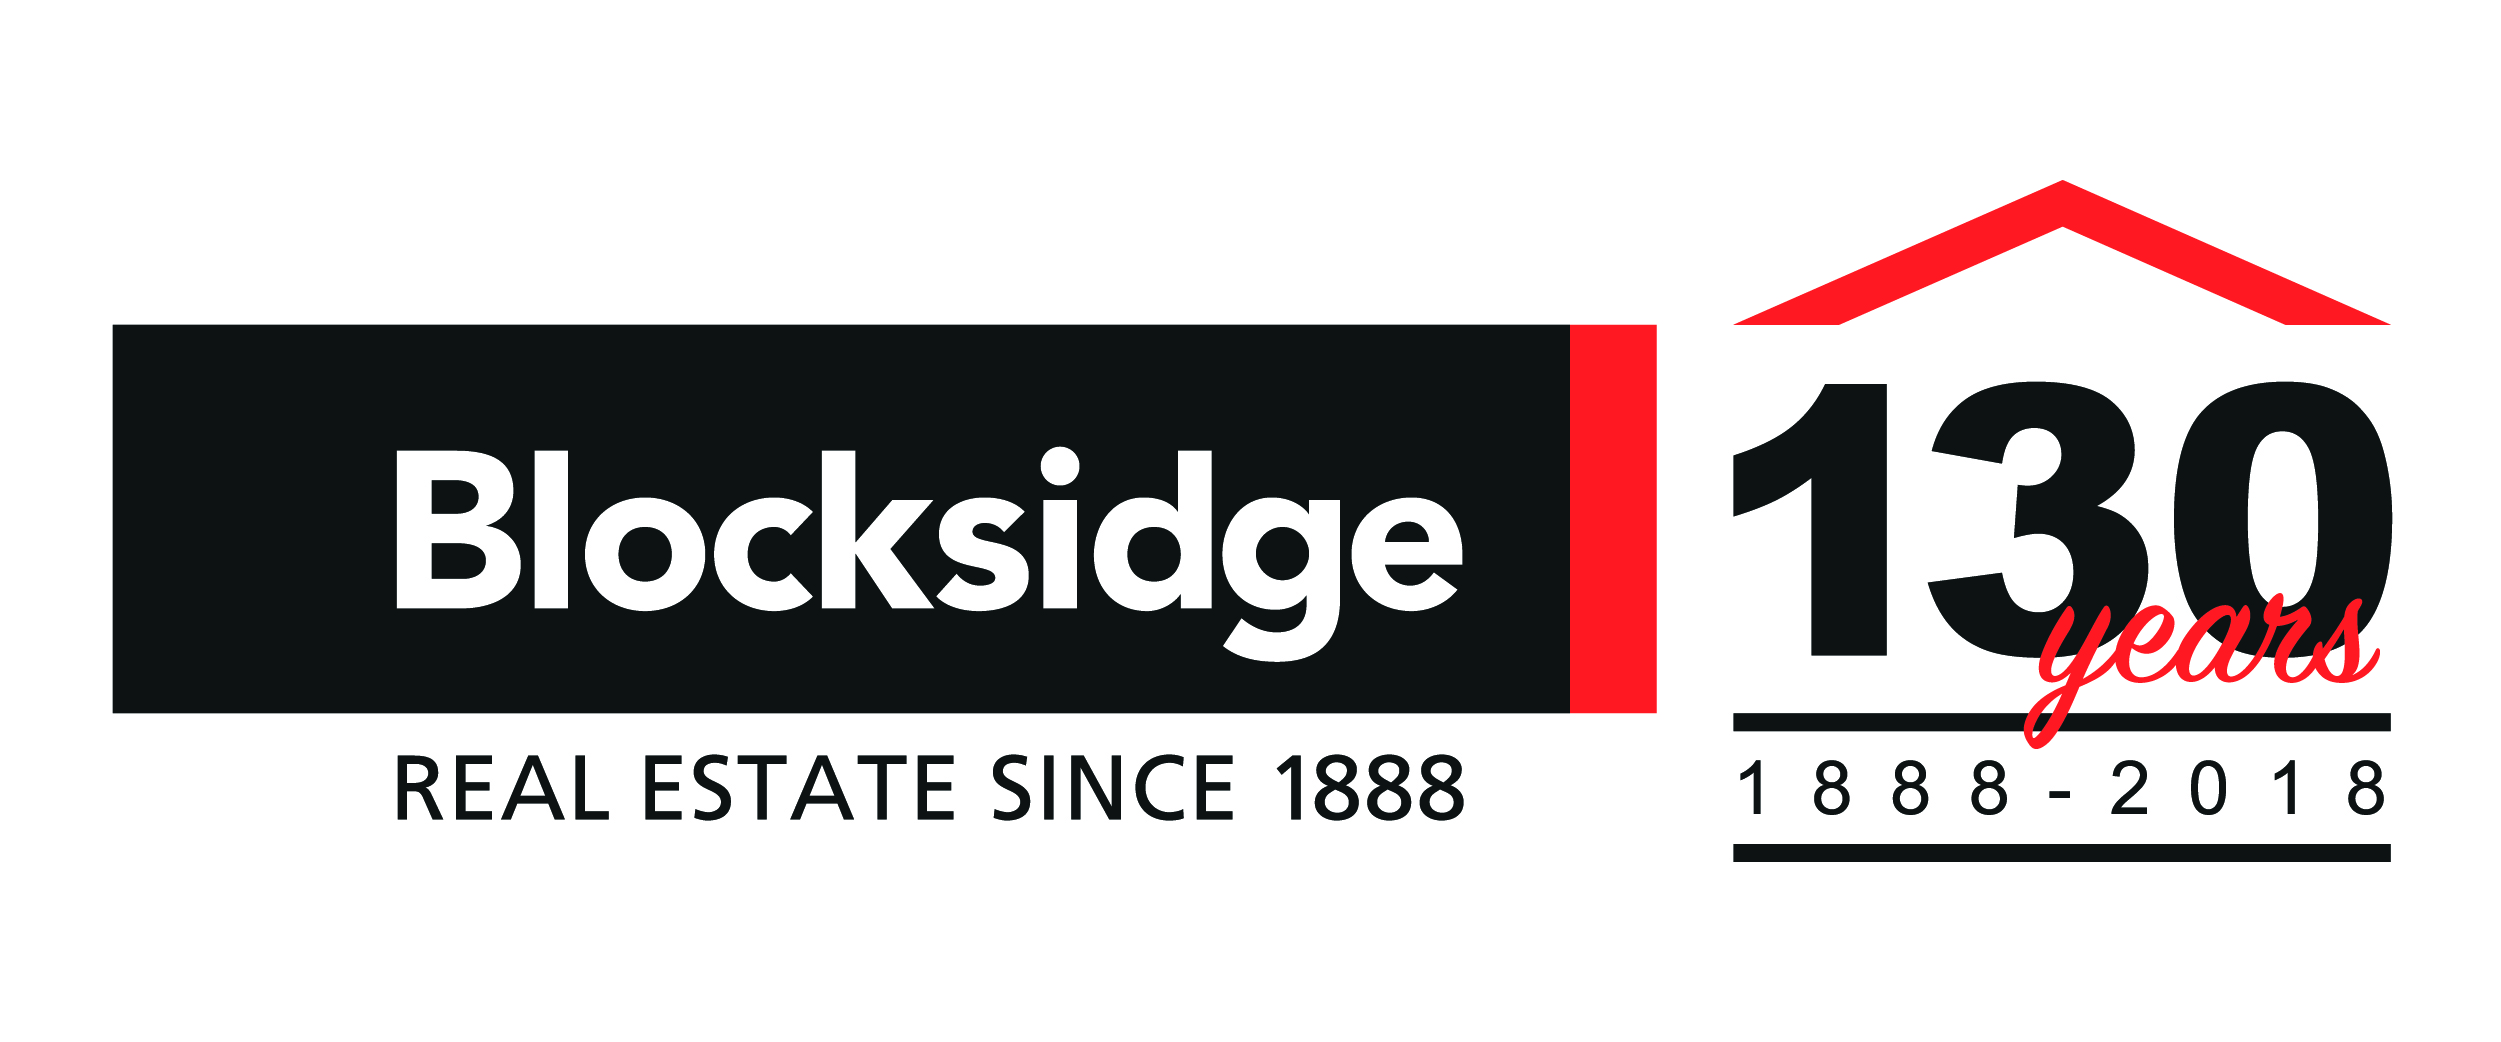 Blocksidge & Ferguson - logo